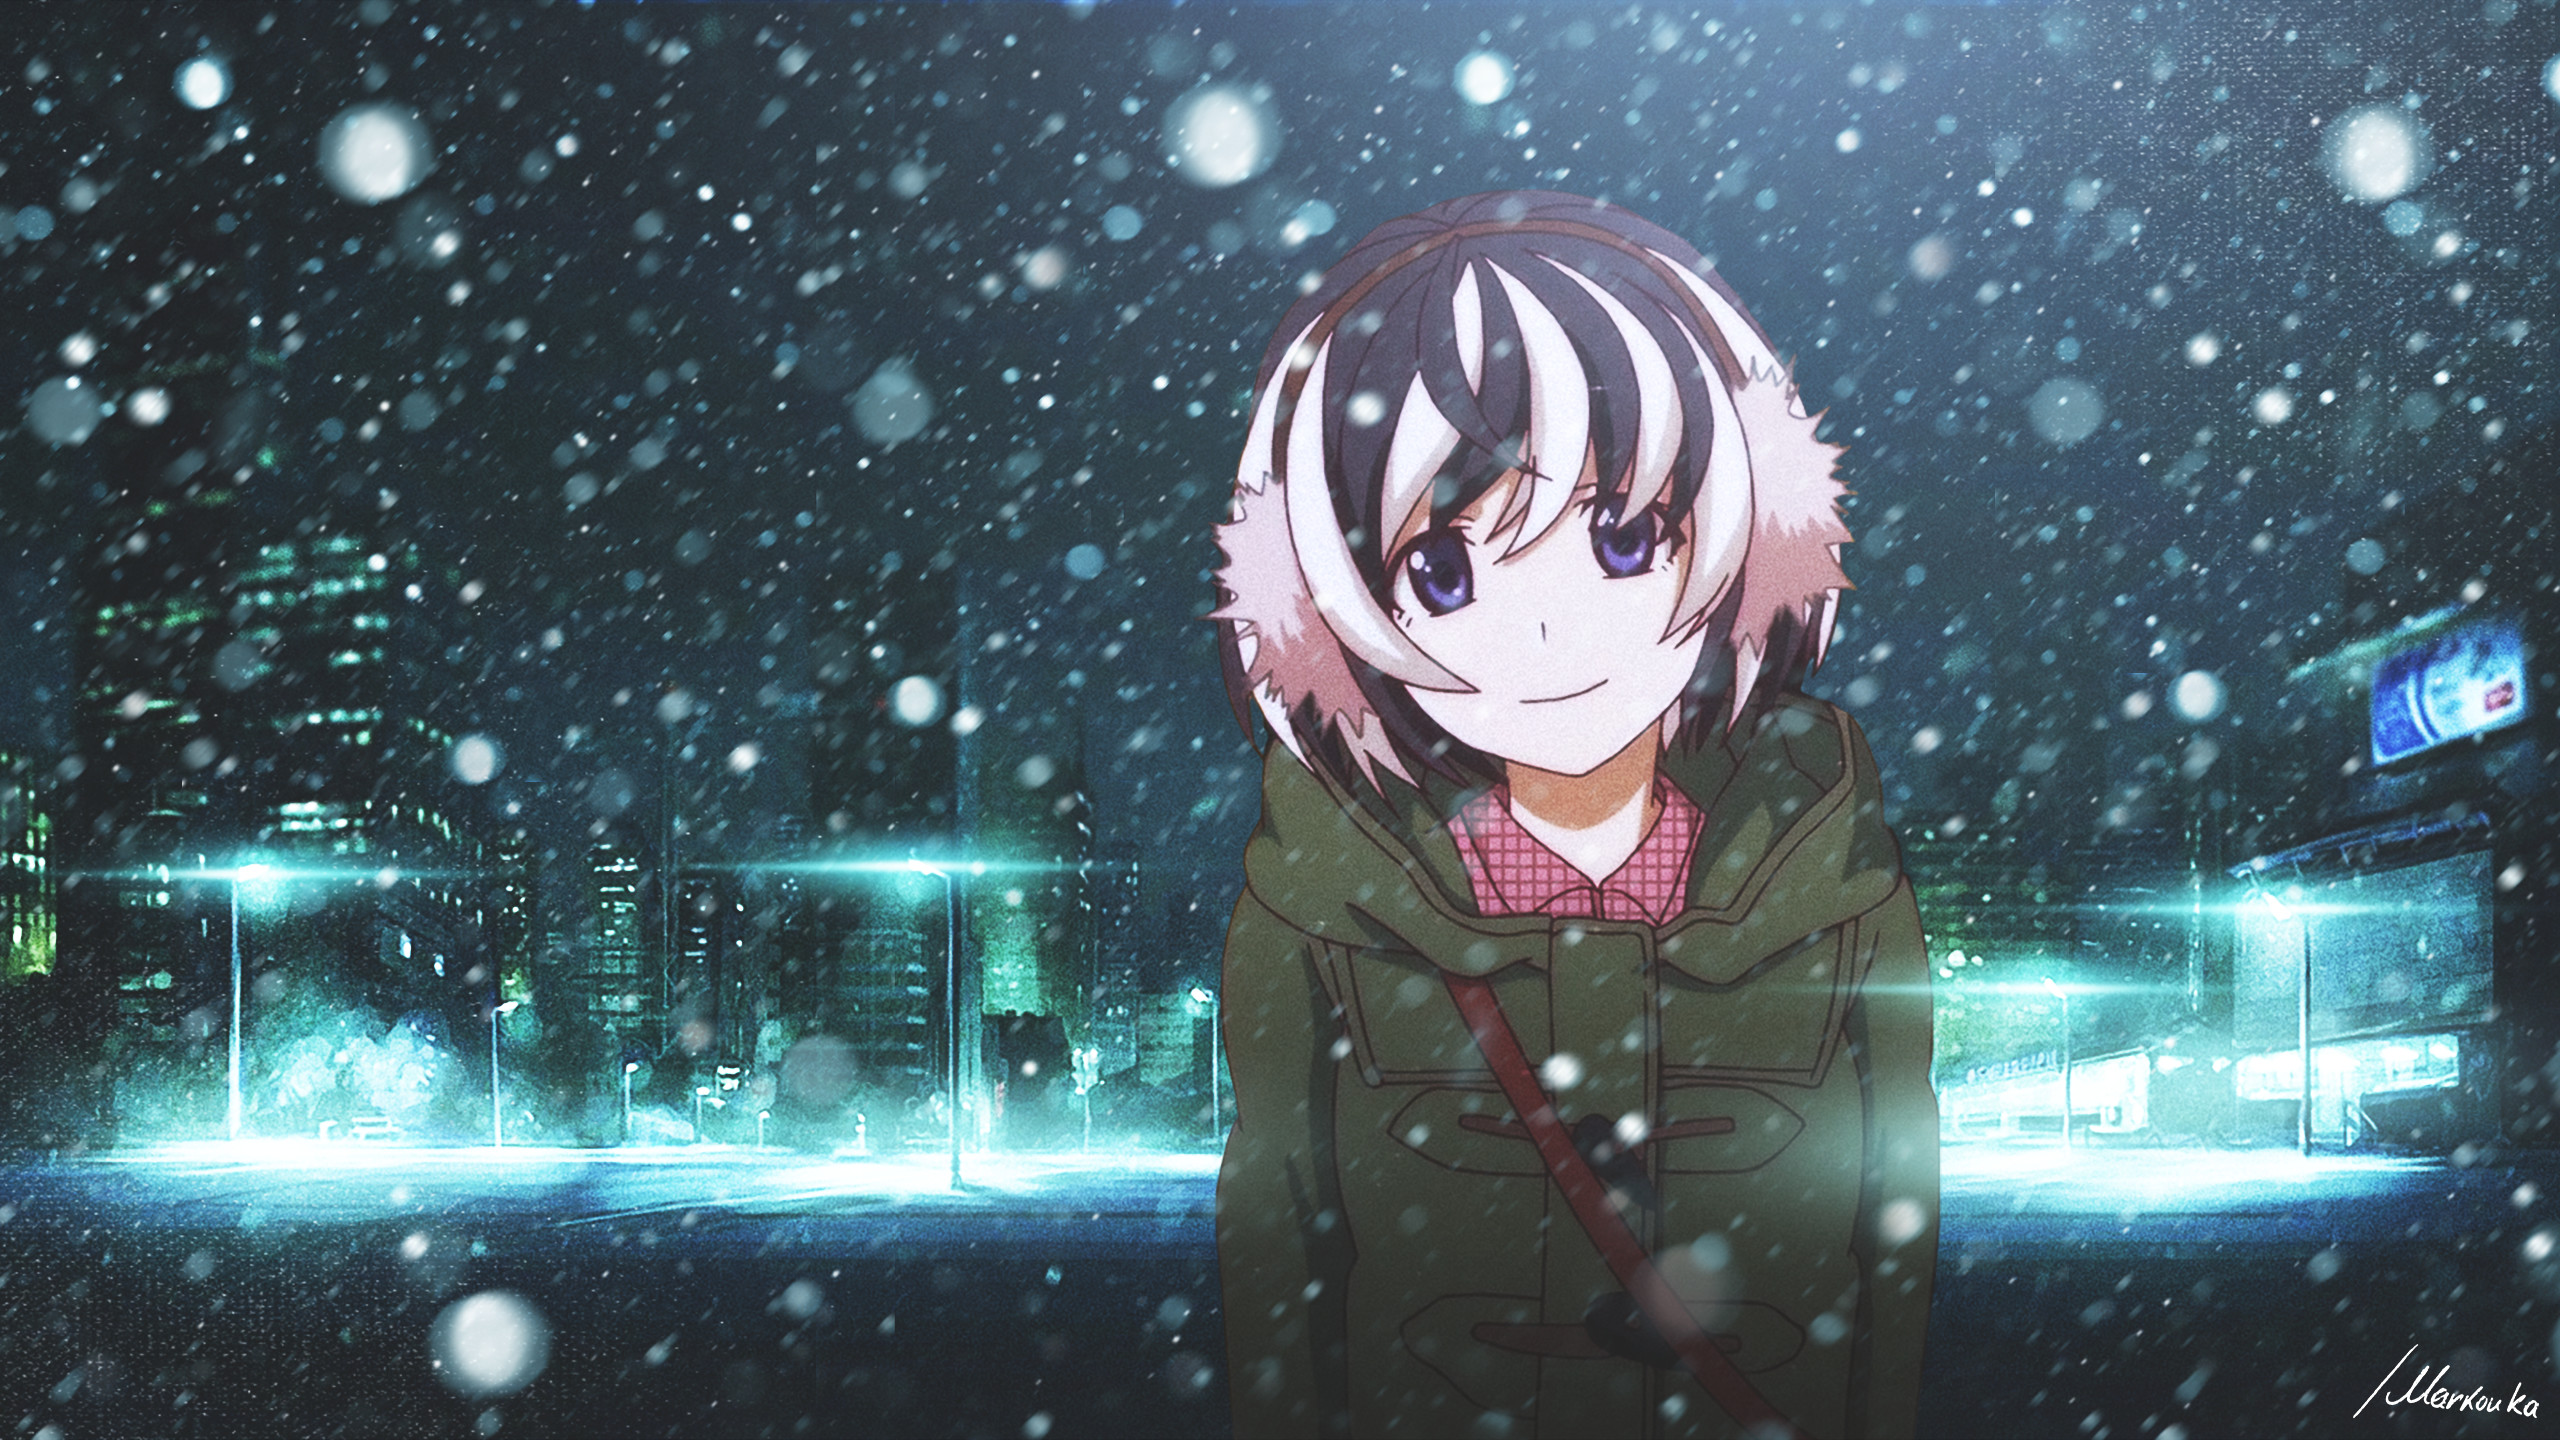 Anime Monogatari Series Hanekawa Tsubasa winter night city snow  anime